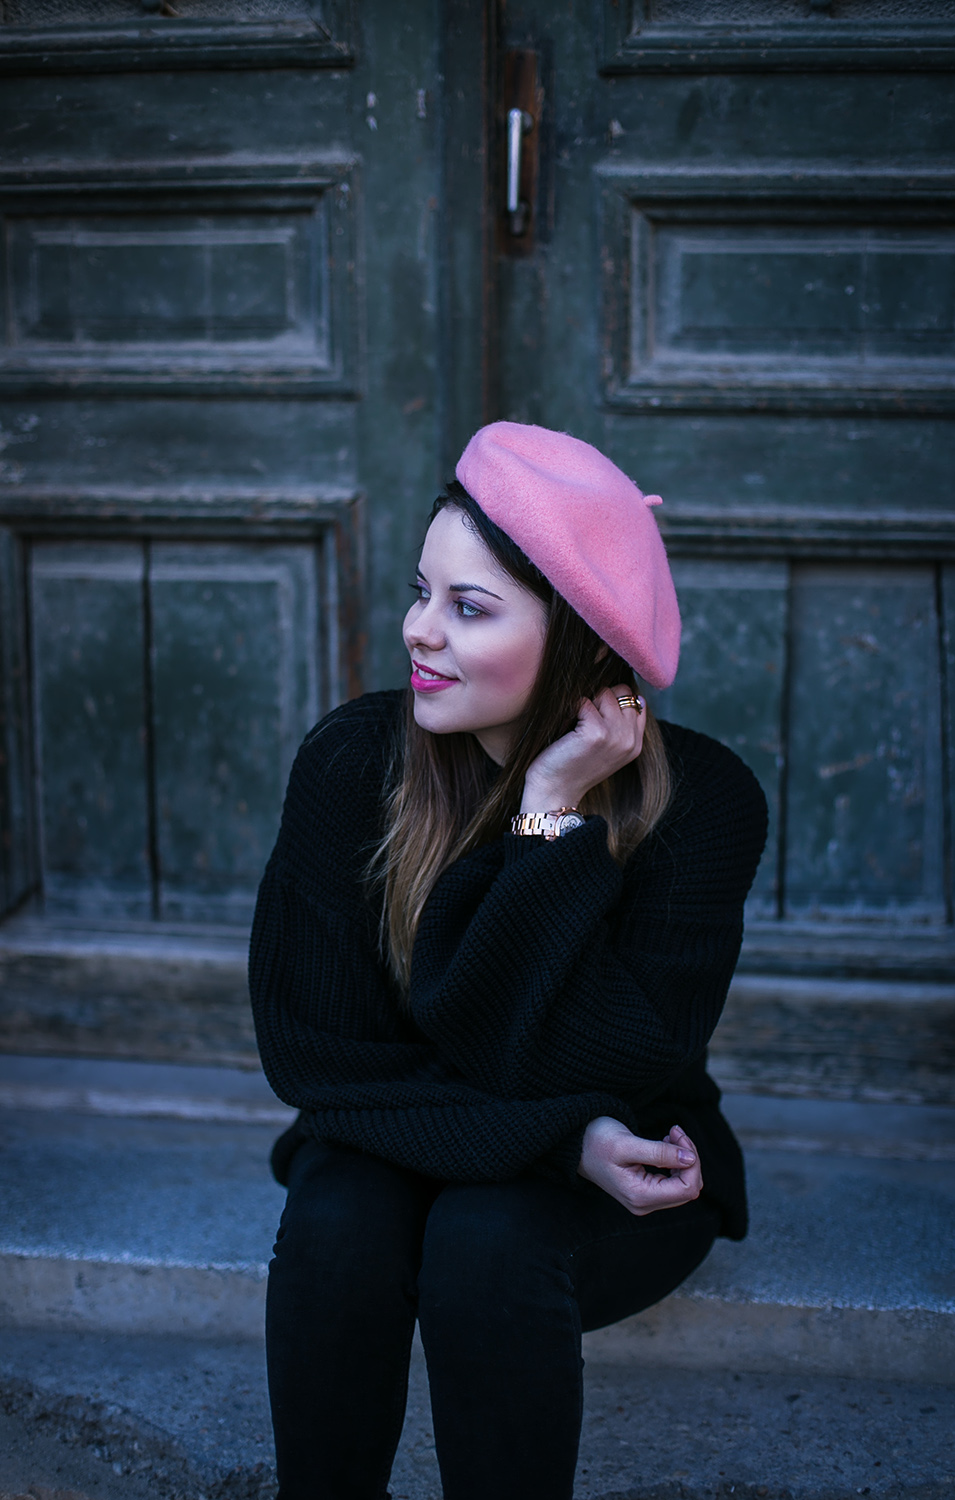 black outfit and pink french beret